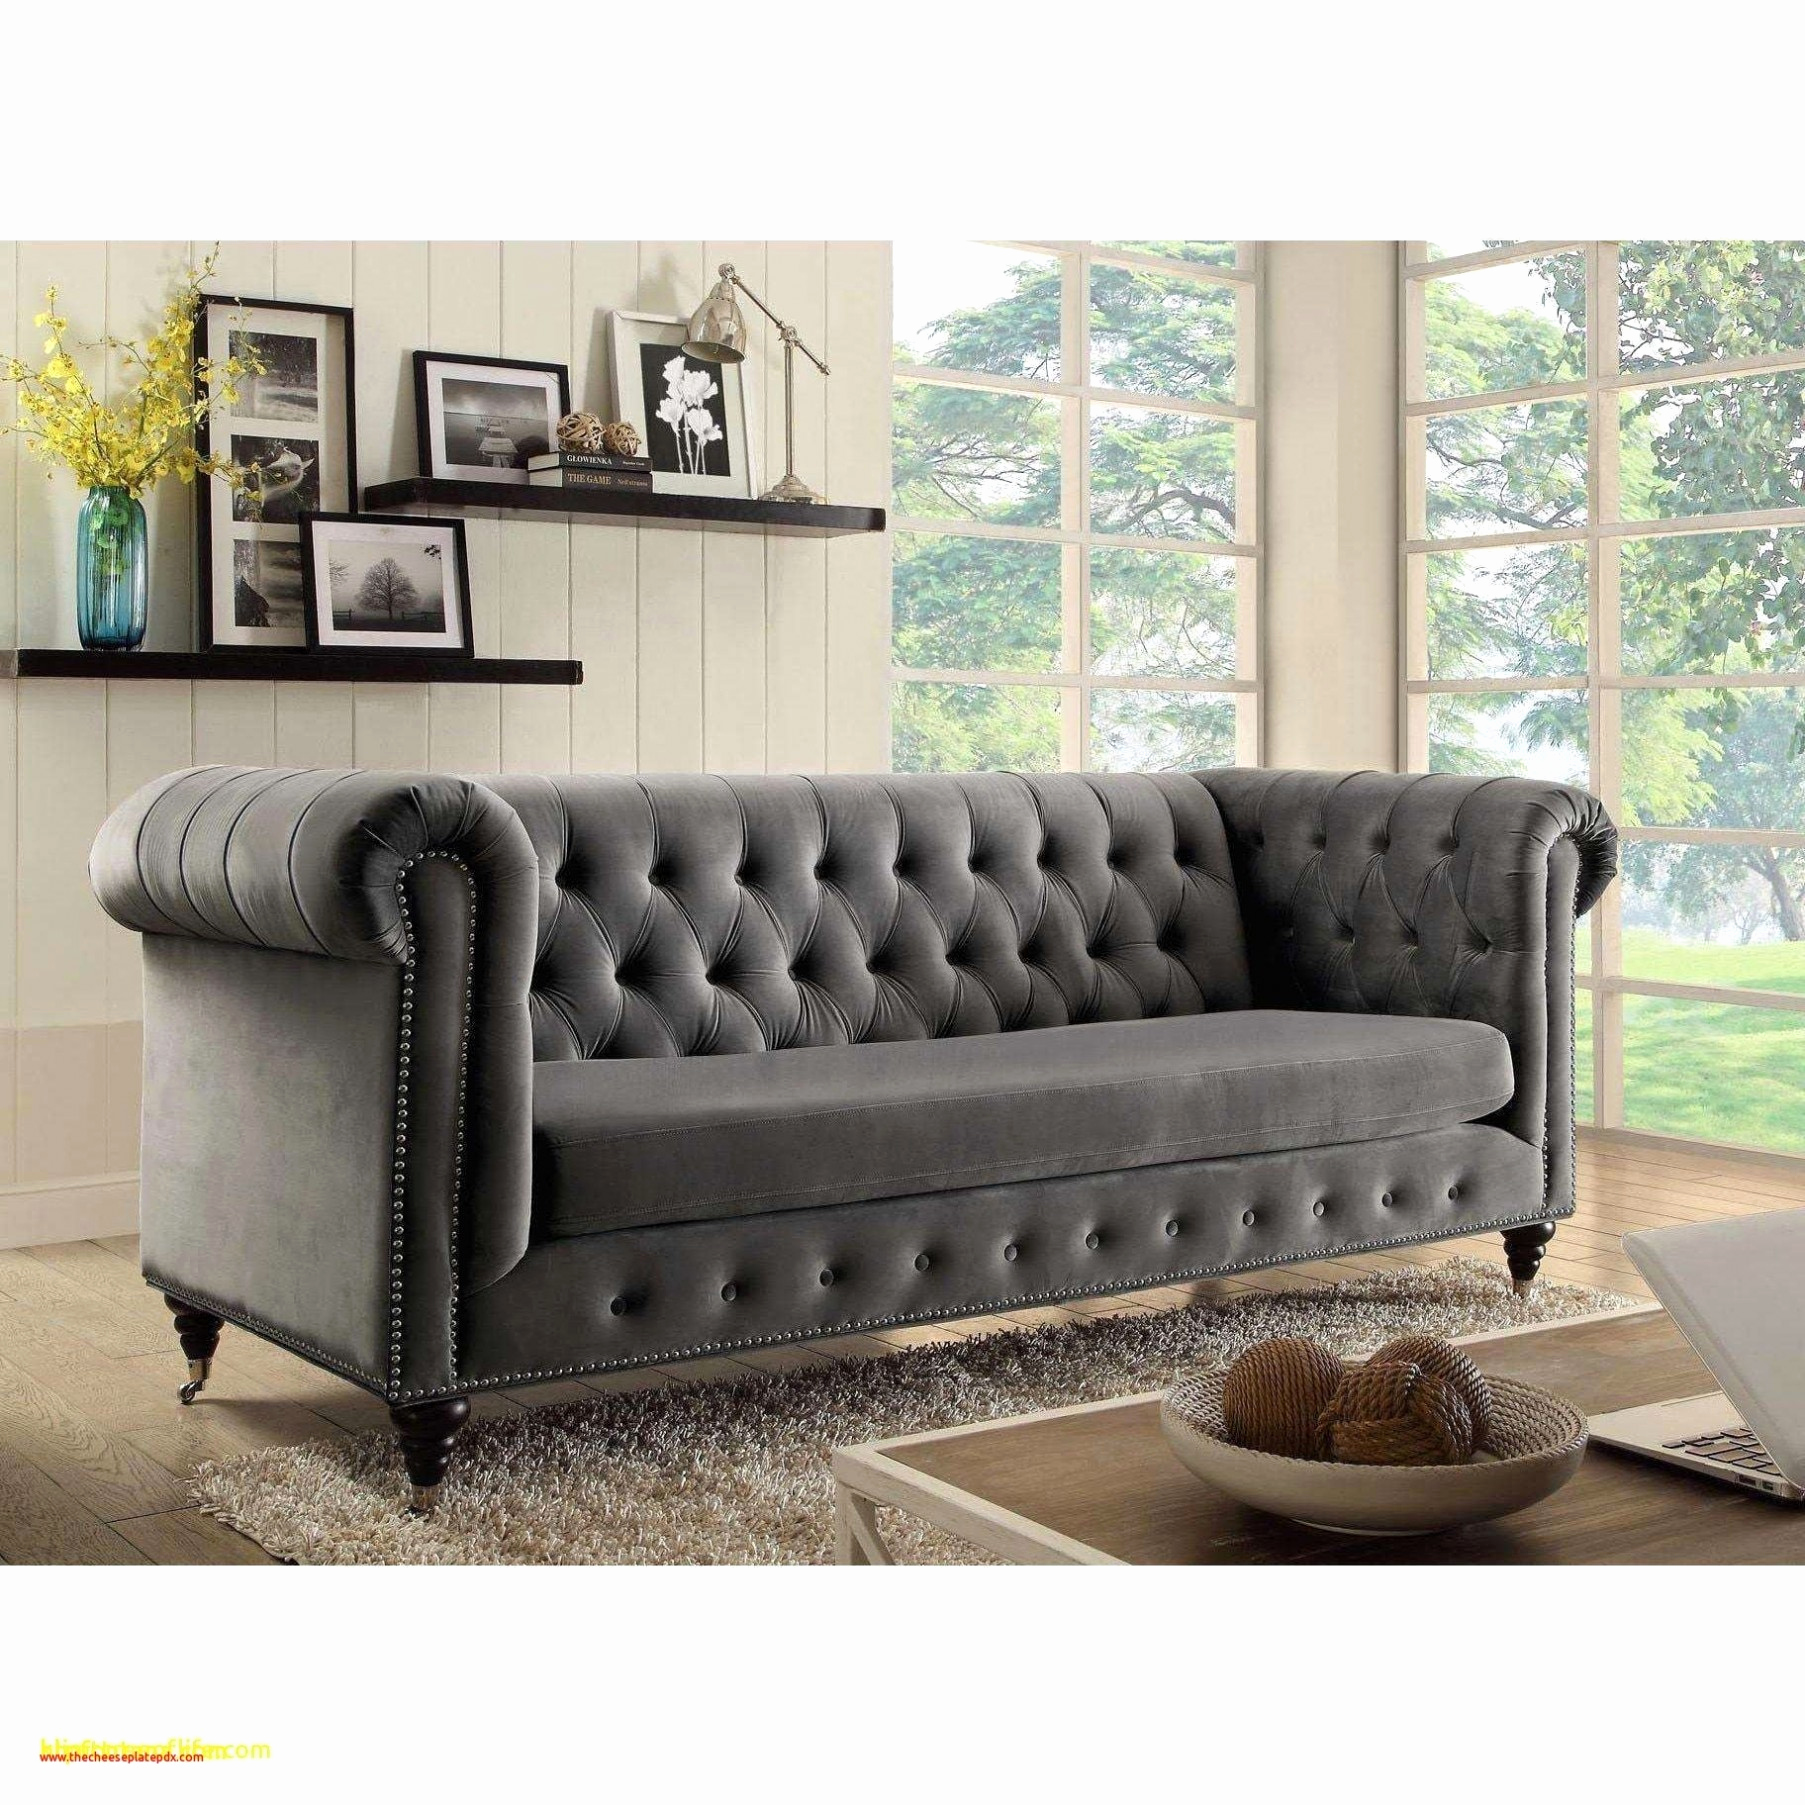 "Ikea Big sofa Inspirierend sofa Xxl Big sofa Led Salon Zdj""¢""¢cie Od Ikea Salon Ikea Zachary"